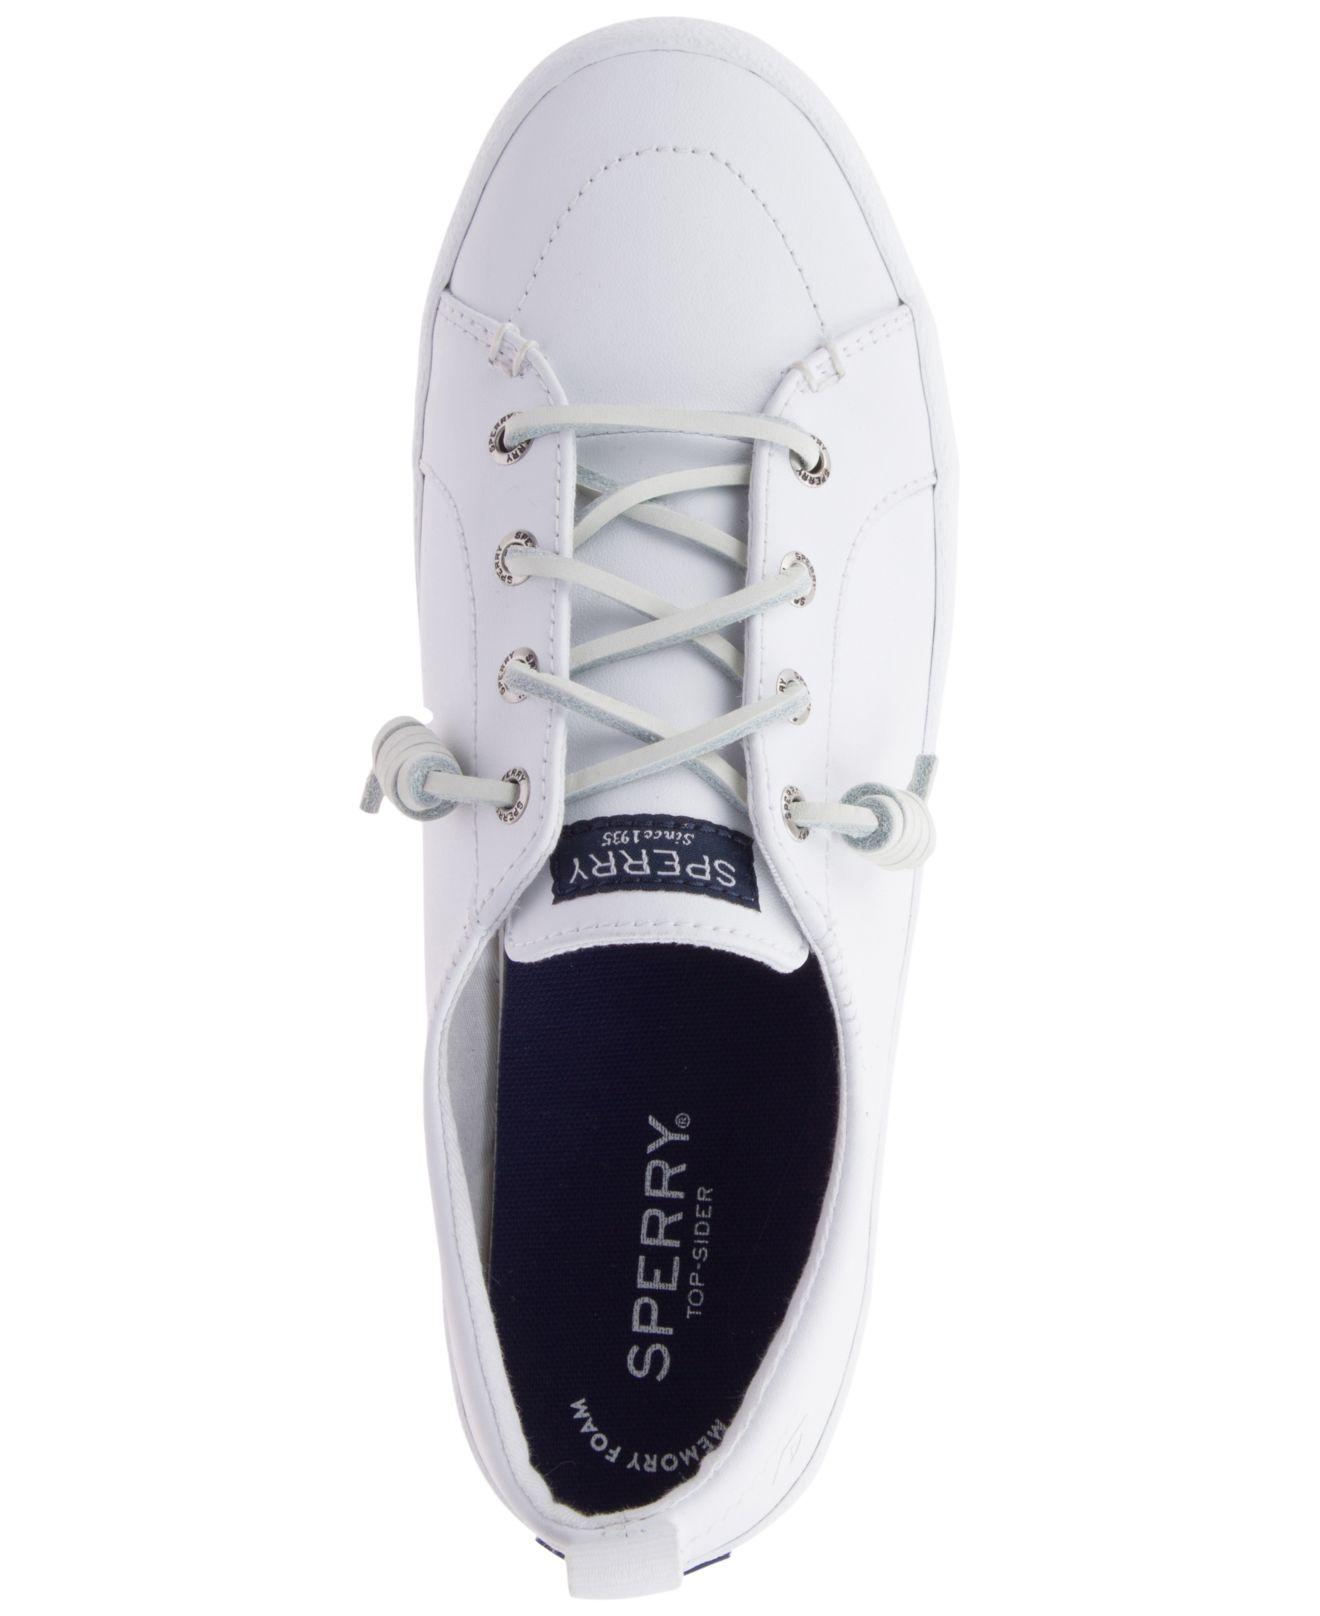 sale online pretty cheap official site Sperry Top-Sider Crest Vibe Leather Sneakers, Created For Macy's ...